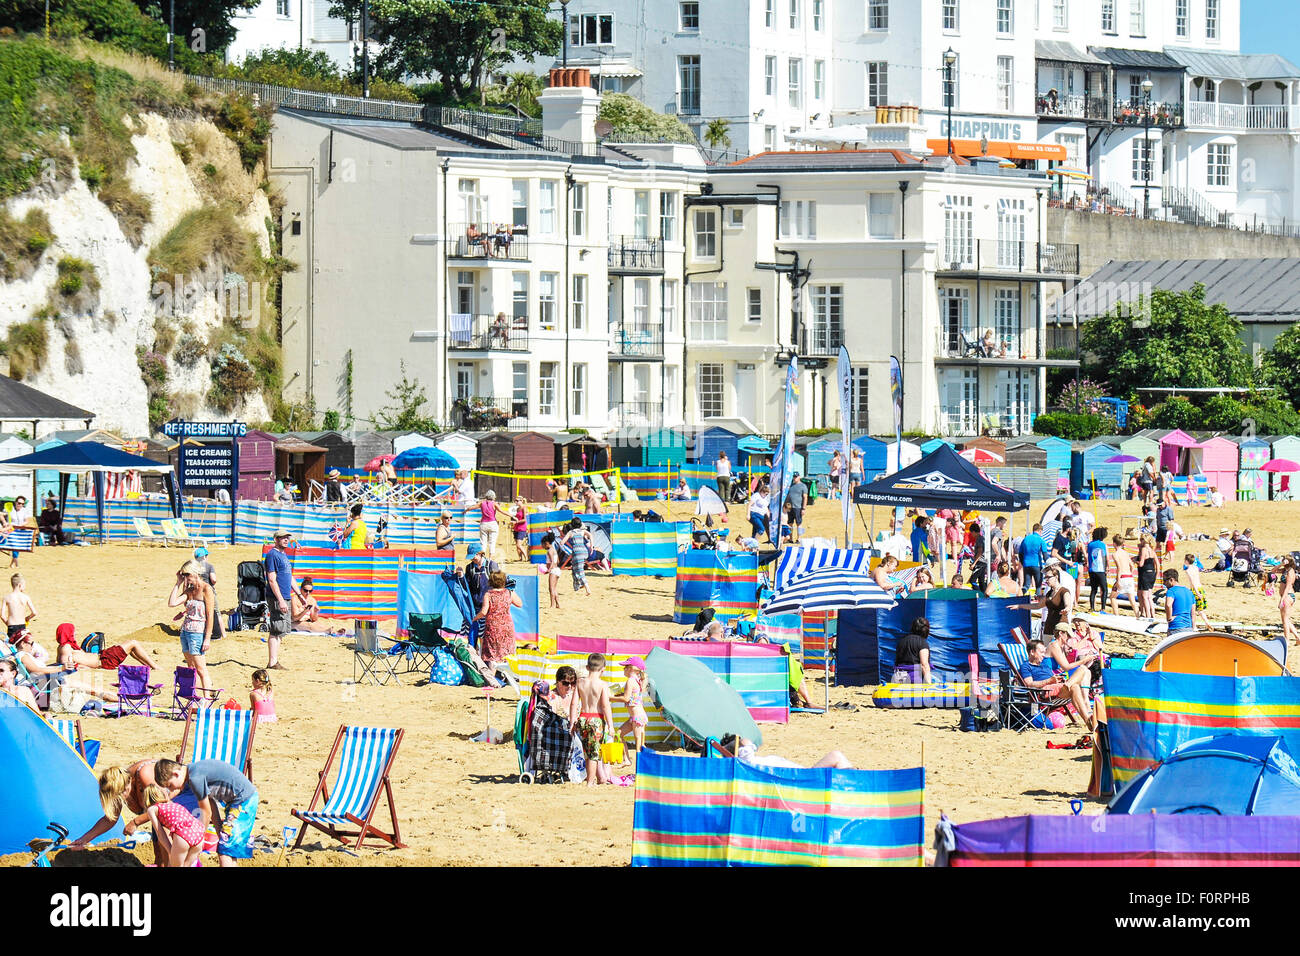 Holidaymakers on the beach at Viking Bay in Broadstairs, Kent. - Stock Image